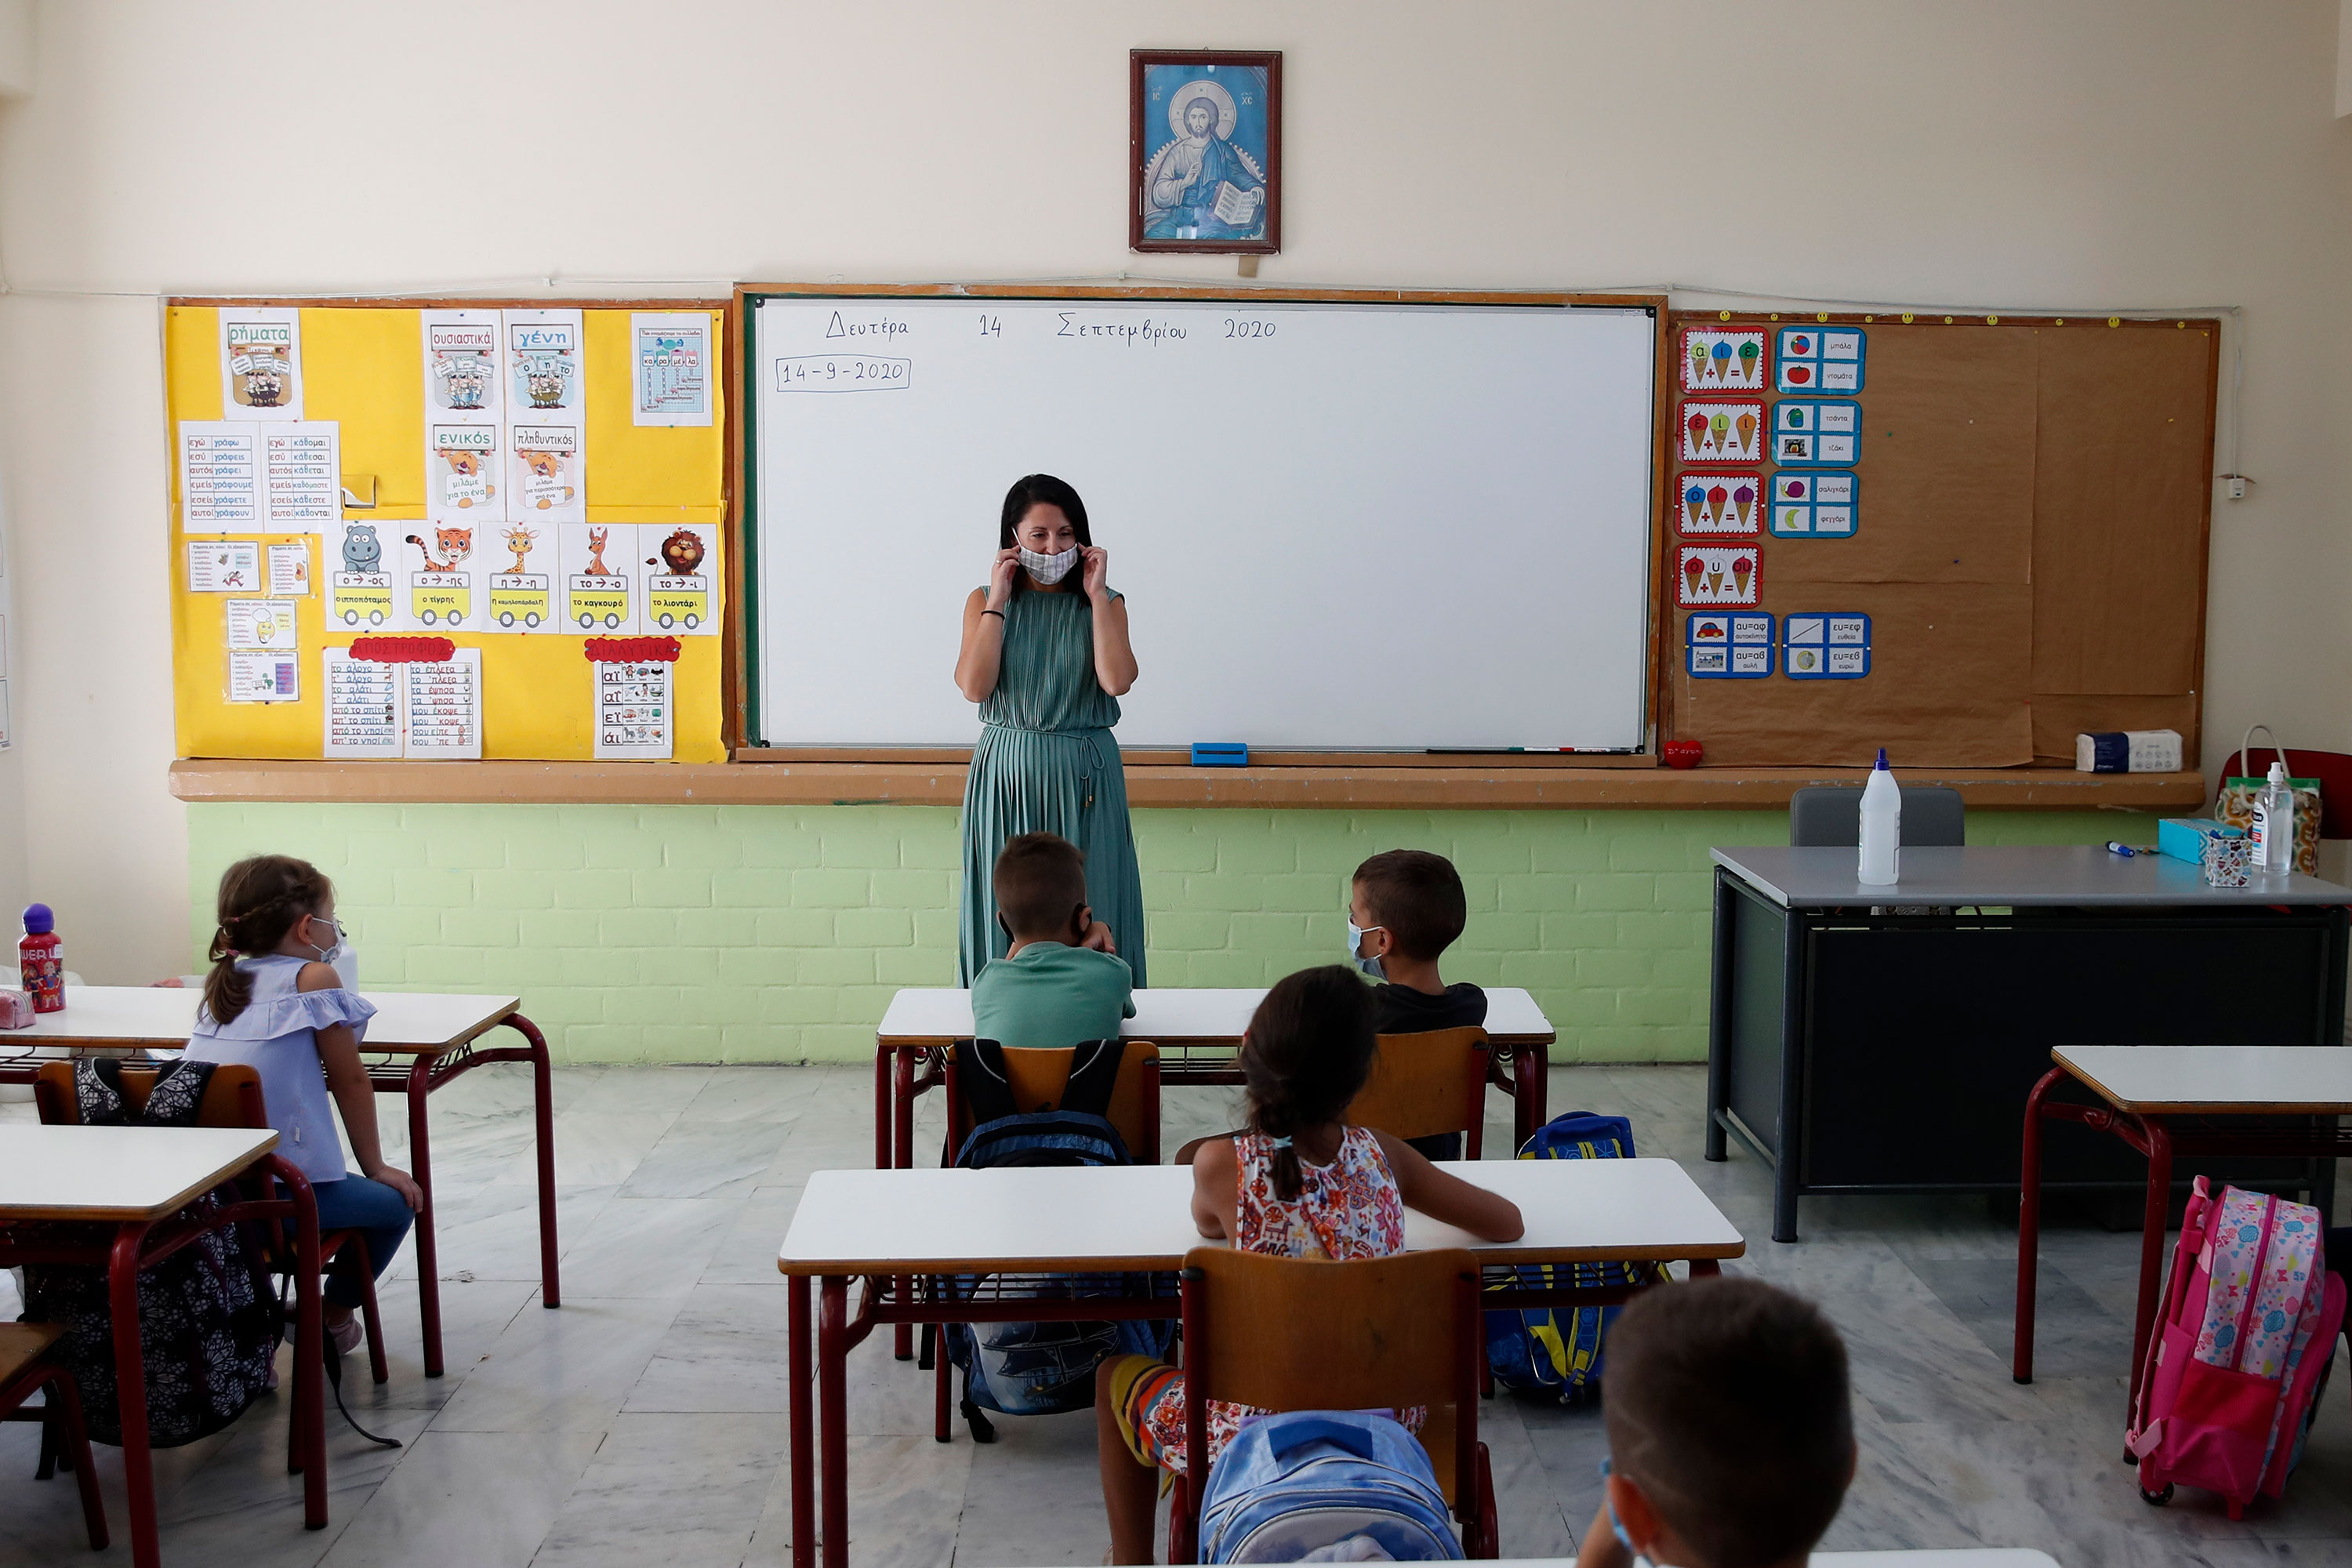 A teacher explains to students how to use the face masks at a primary school in Athens, Greece, on September 14.